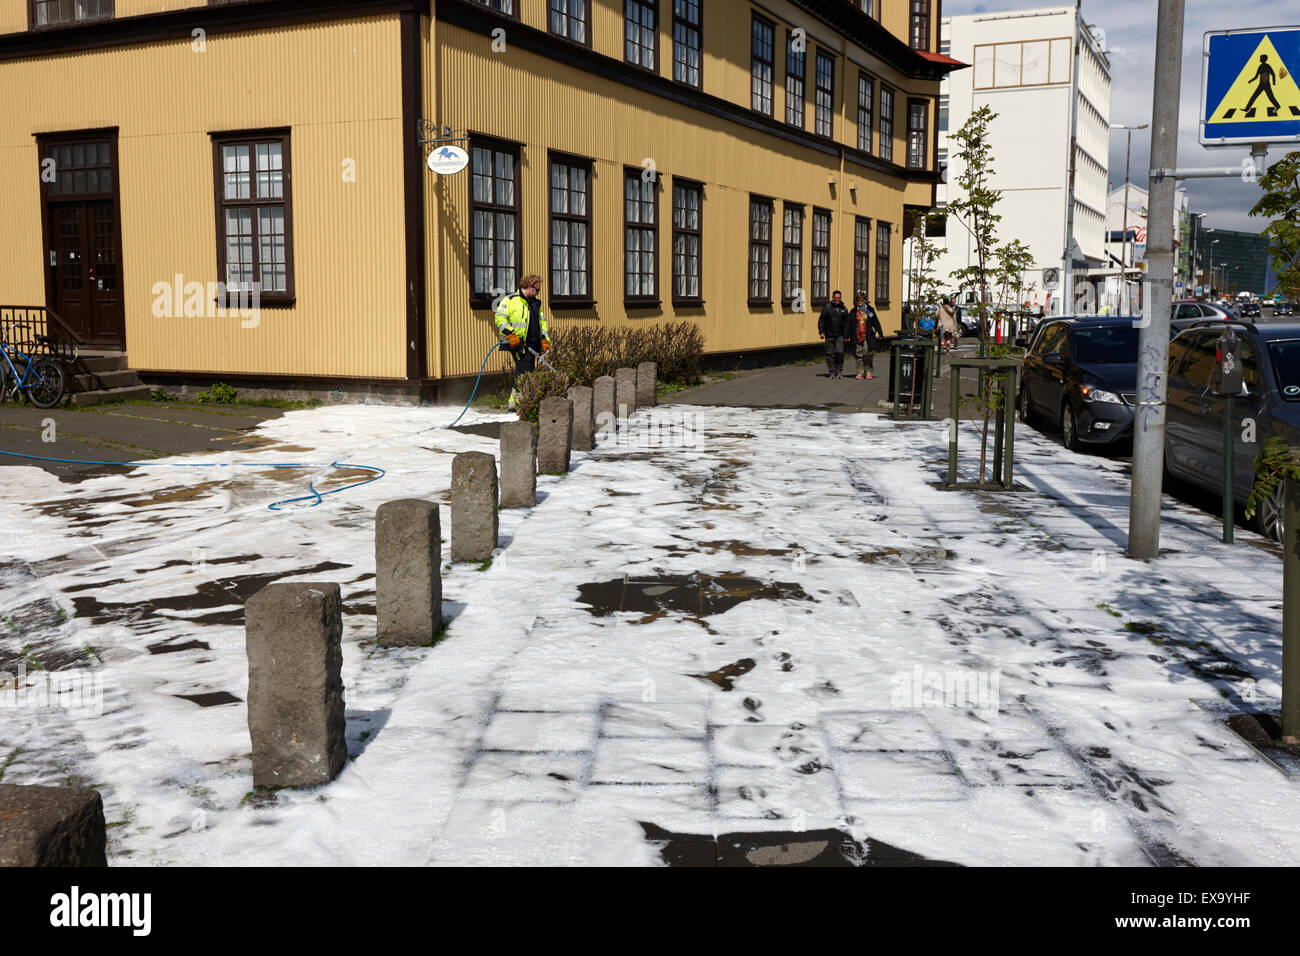 foam street pavement cleaning in reykjavik iceland - Stock Image